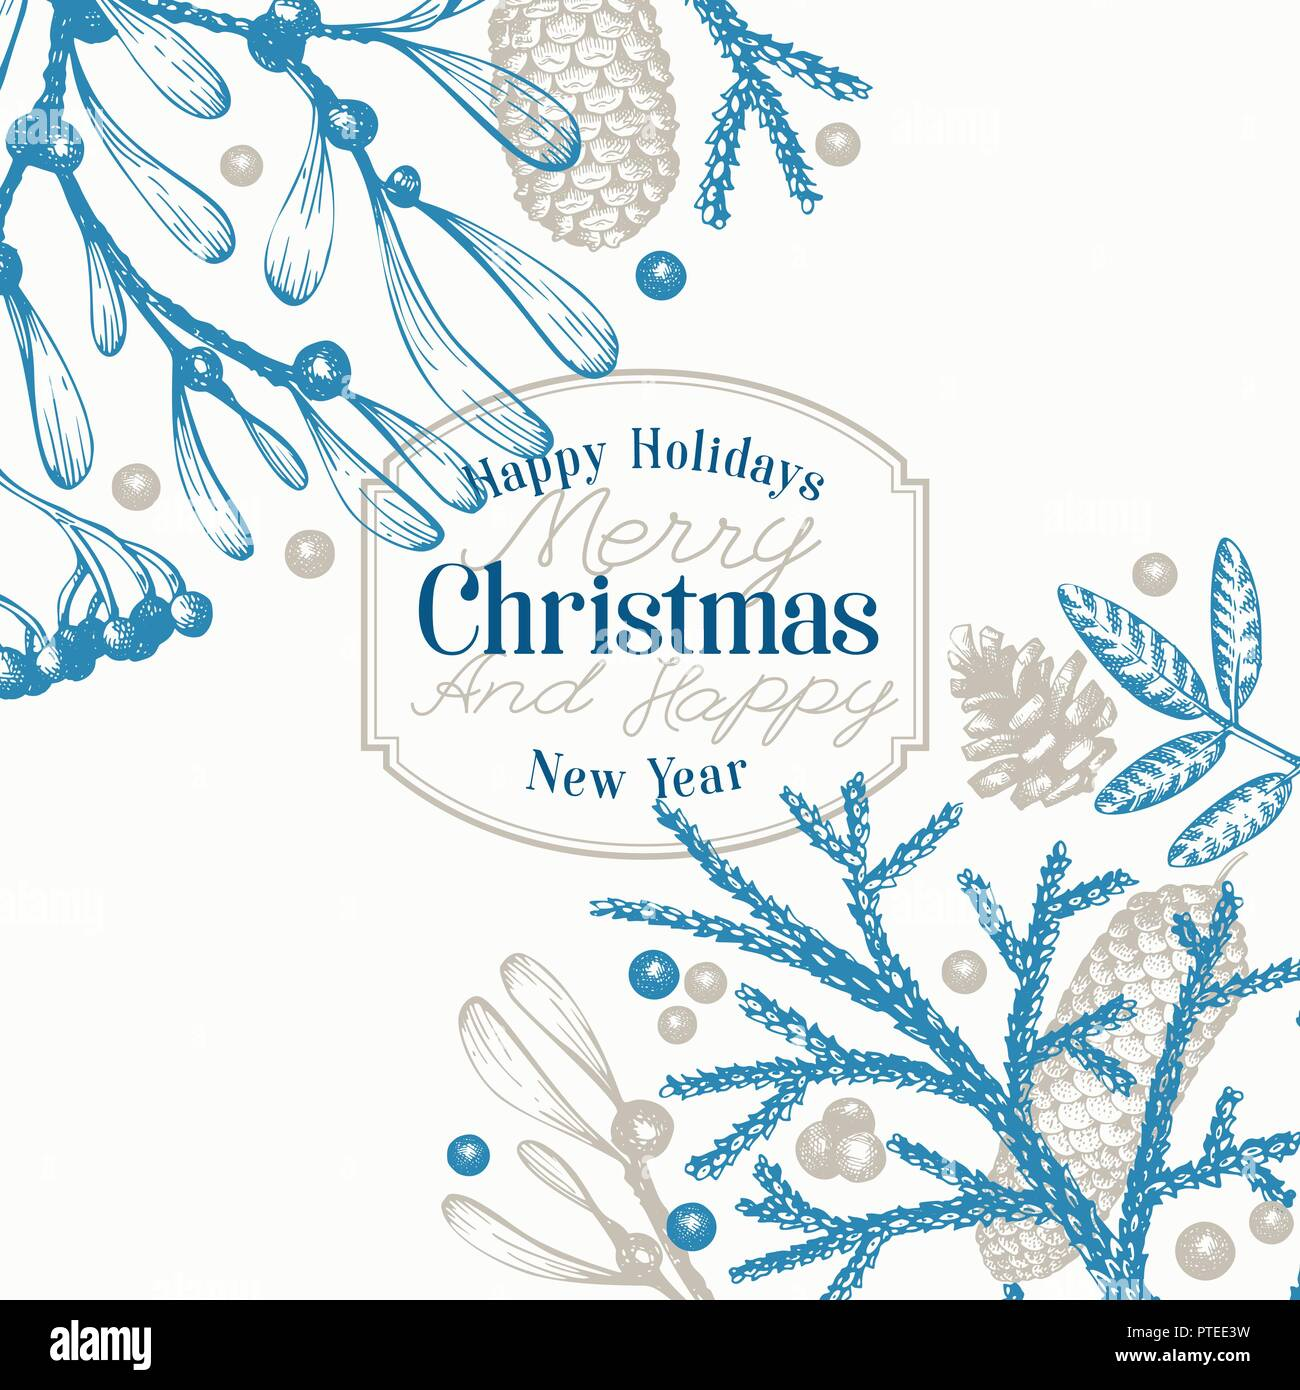 Greeting Christmas card in vintage style. Vector hand drawn illustrations. Banner with coniferous, pine branches, berries, holly, mistletoe. Winter forest background. Merry Christmas template. - Stock Vector